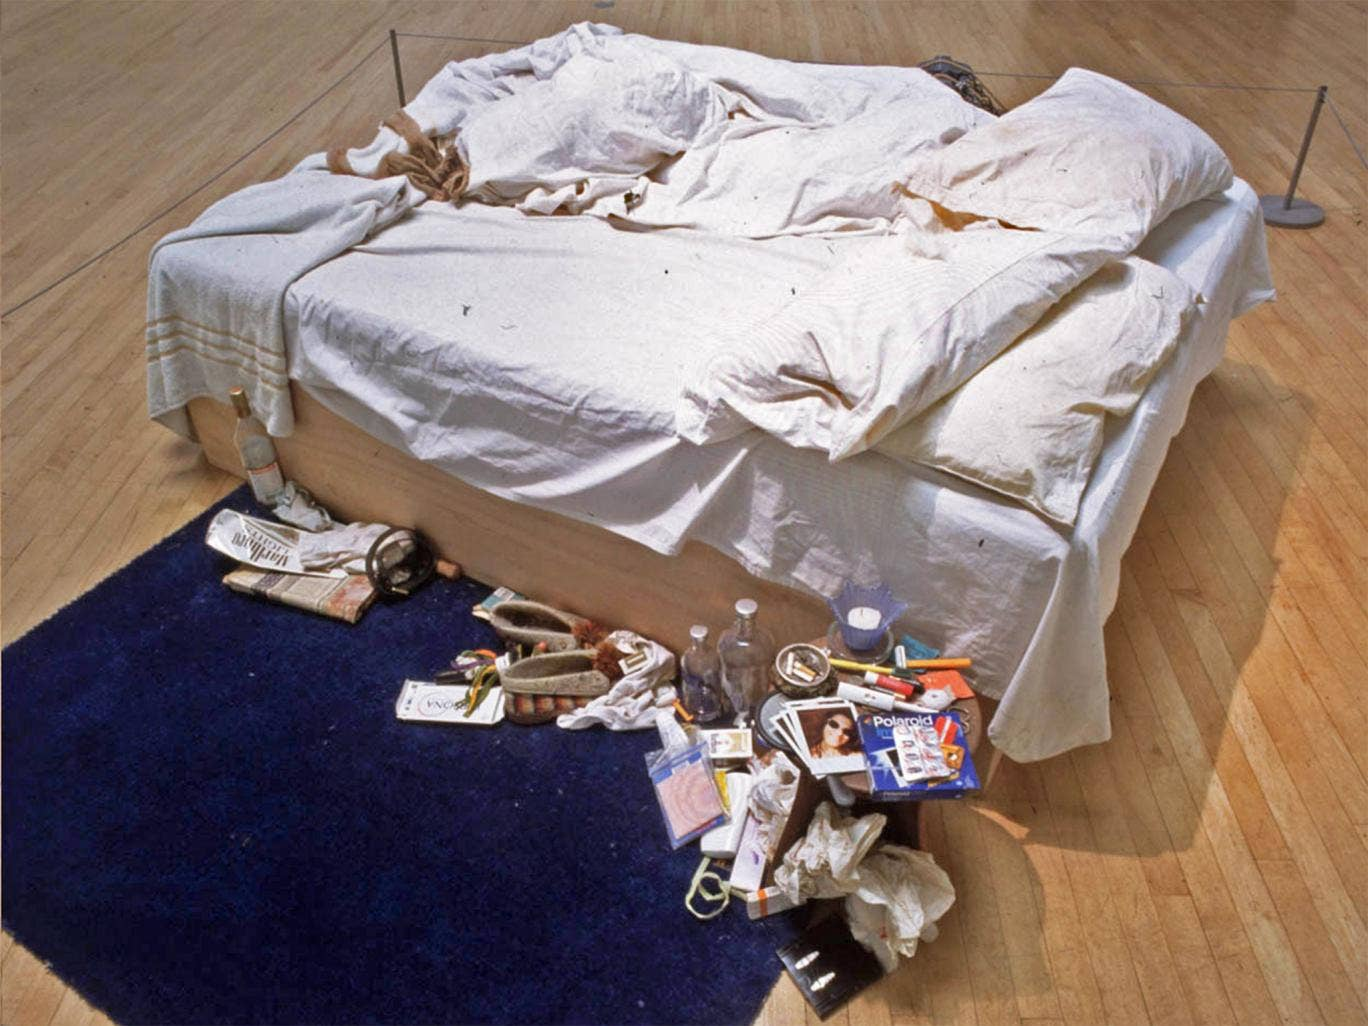 Tracey Emin's 'My Bed' is returning to the Tate more than 15 years after it first caused shockwaves at the gallery